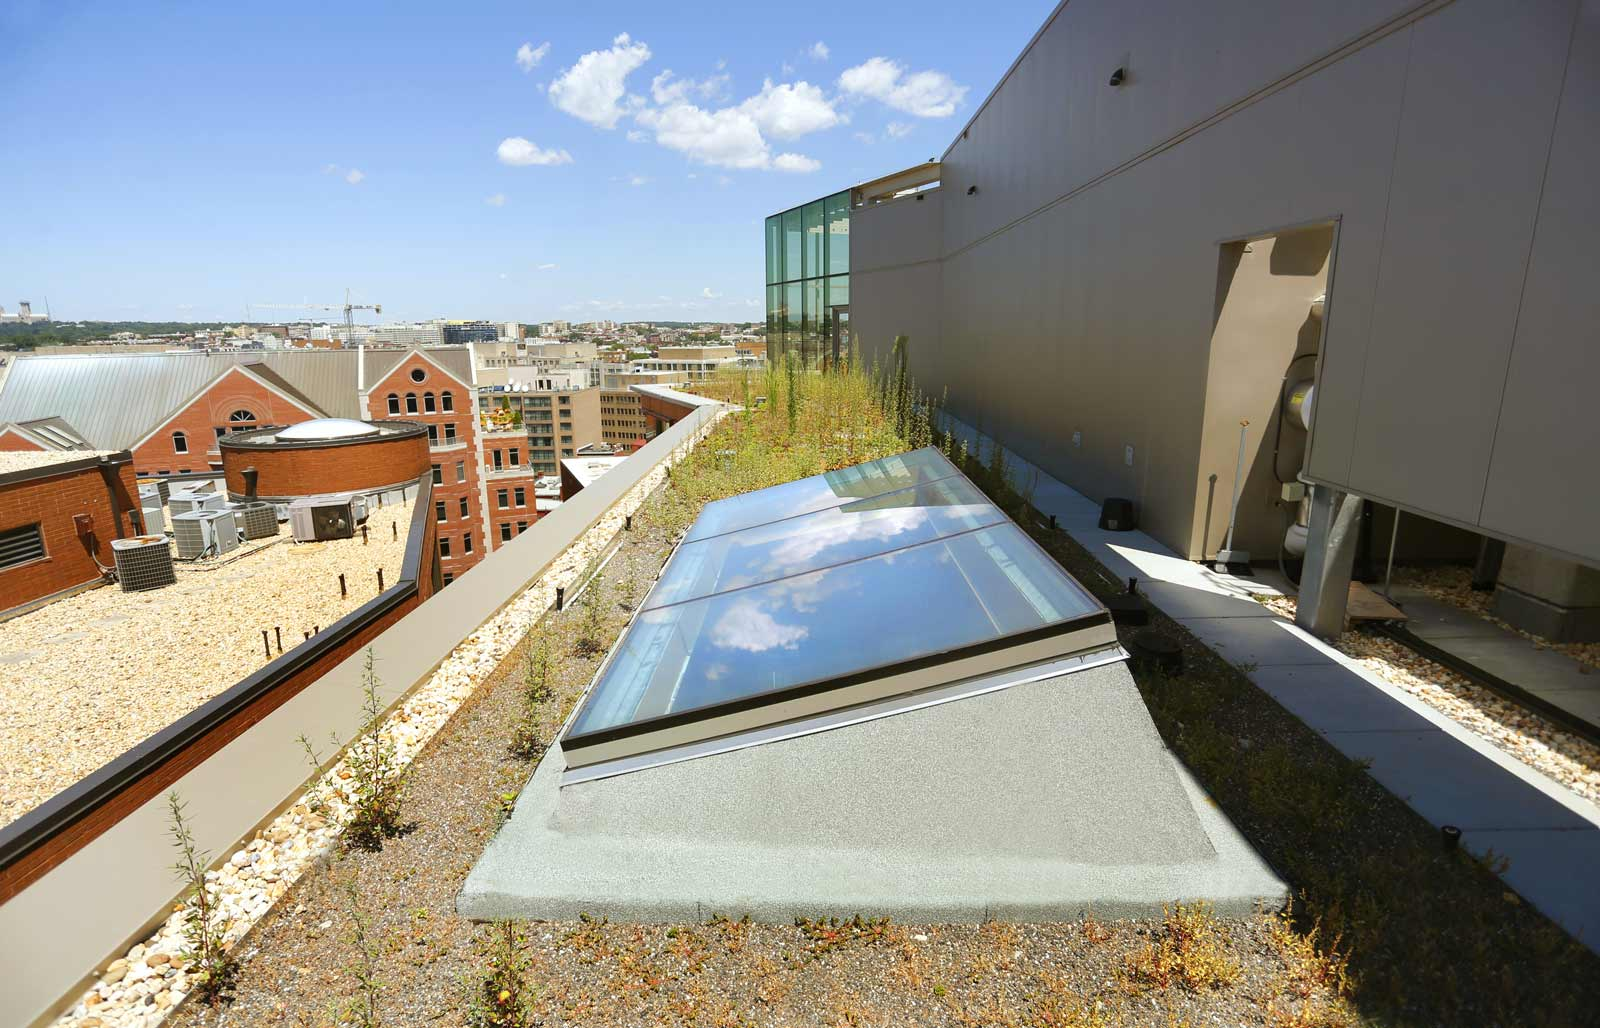 Pillsbury Law Single Slope Skylight from the exterior